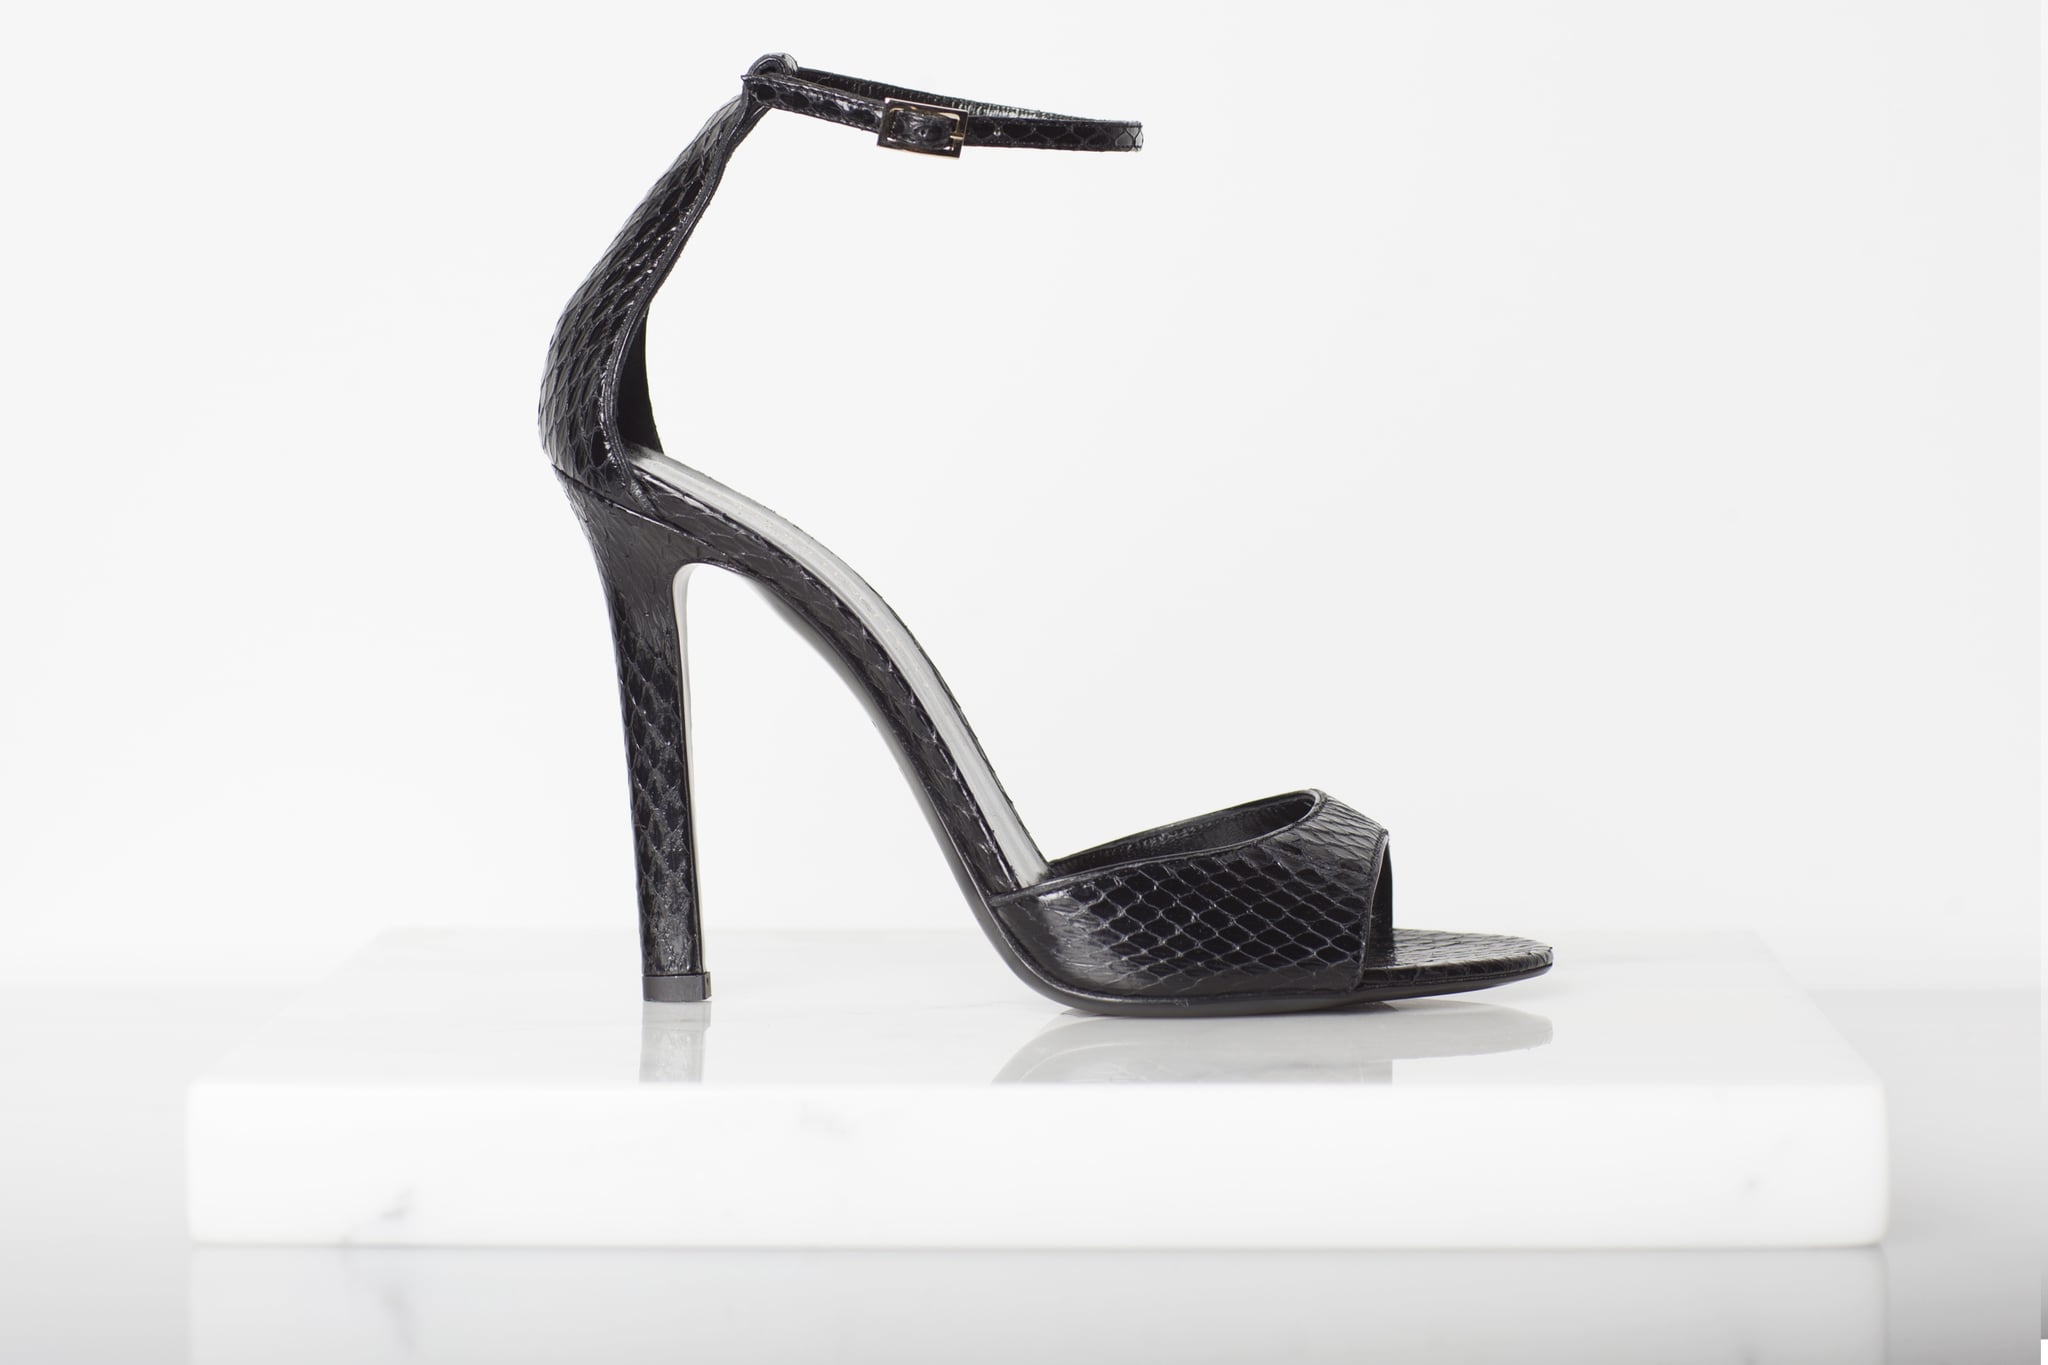 Whisper Watersnake Sandal in Black ($695) Photo courtesy of Tamara Mellon